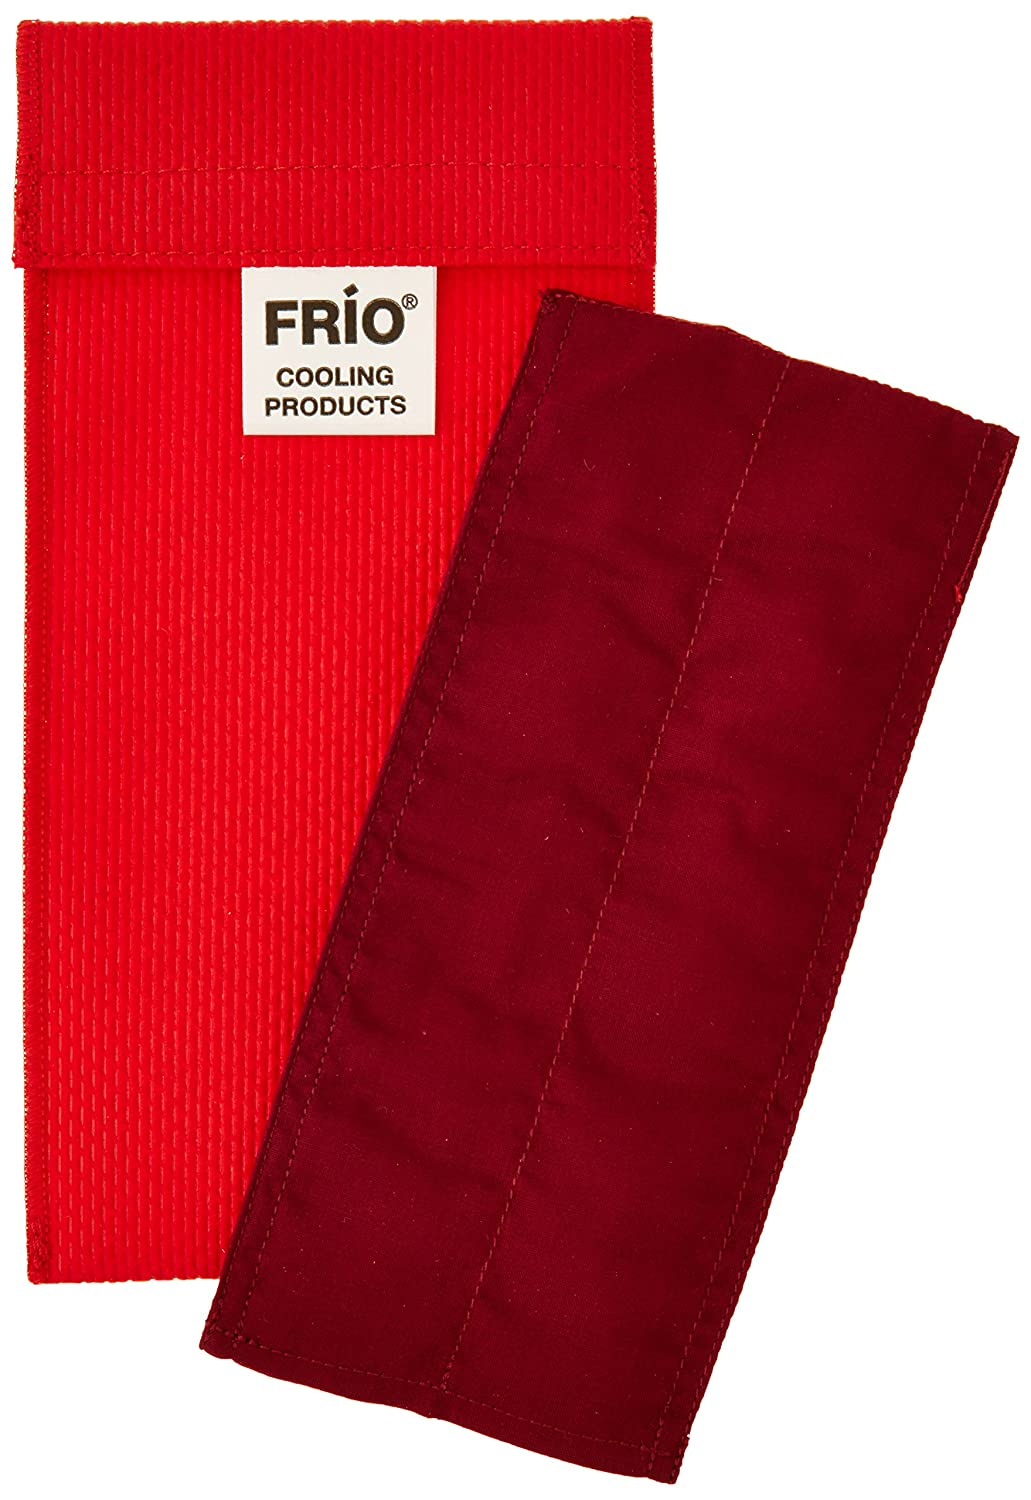 Frio Double sac isotherme pour insuline 8  x 18  cm FRIO MEDICAL Doppel